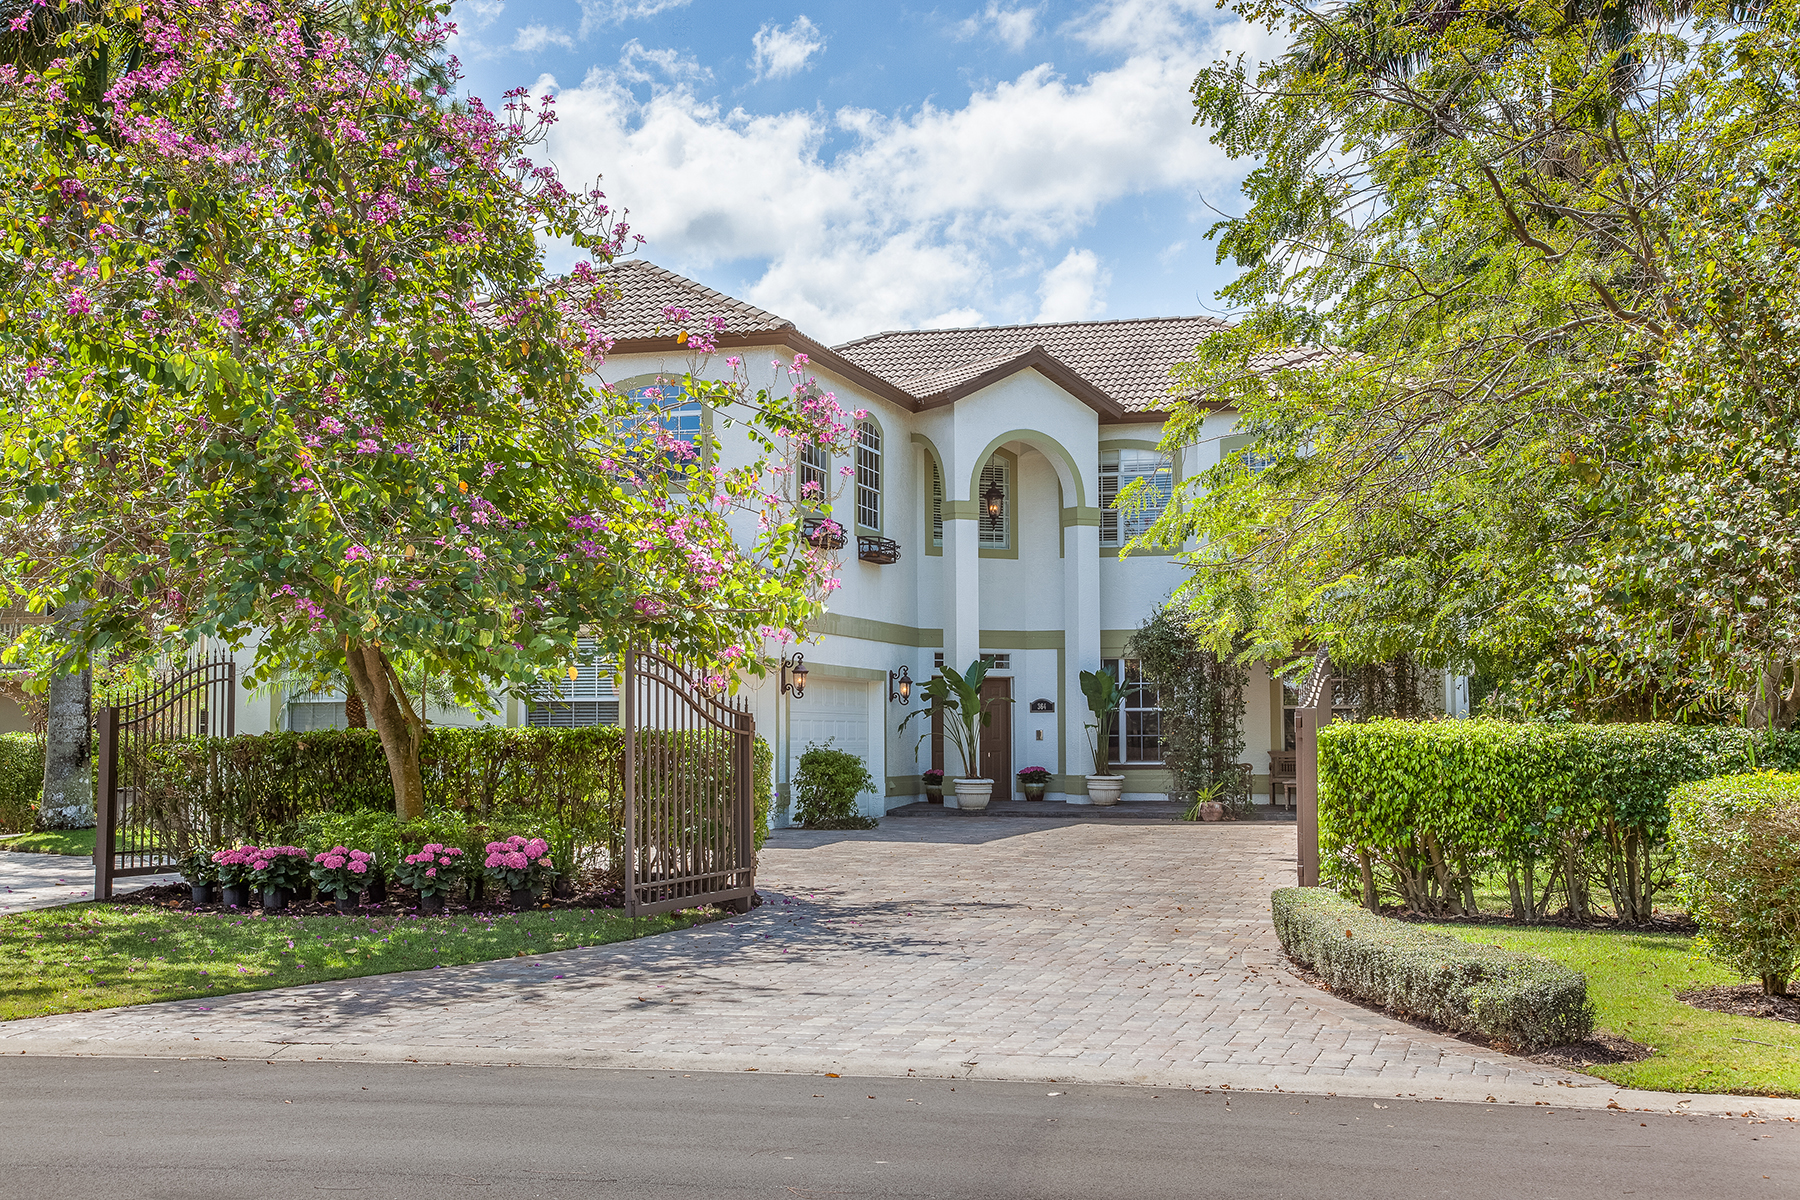 Single Family Home for Sale at NORTHGATE-NORTHGATE VILLAGE 364 Burning Tree Dr, Naples, Florida 34105 United States